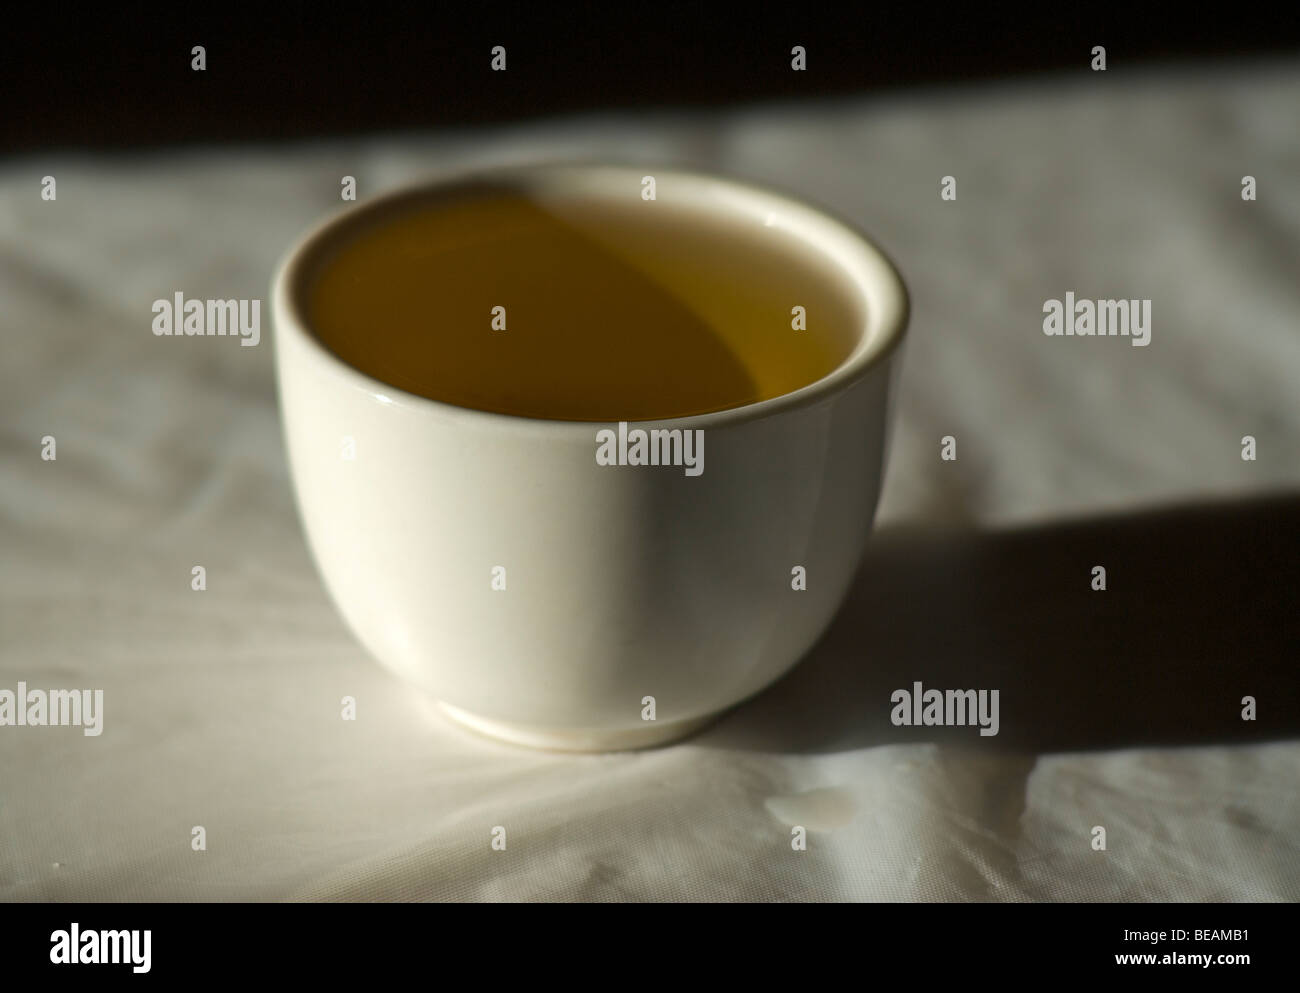 Tea in a cup. China - Stock Image